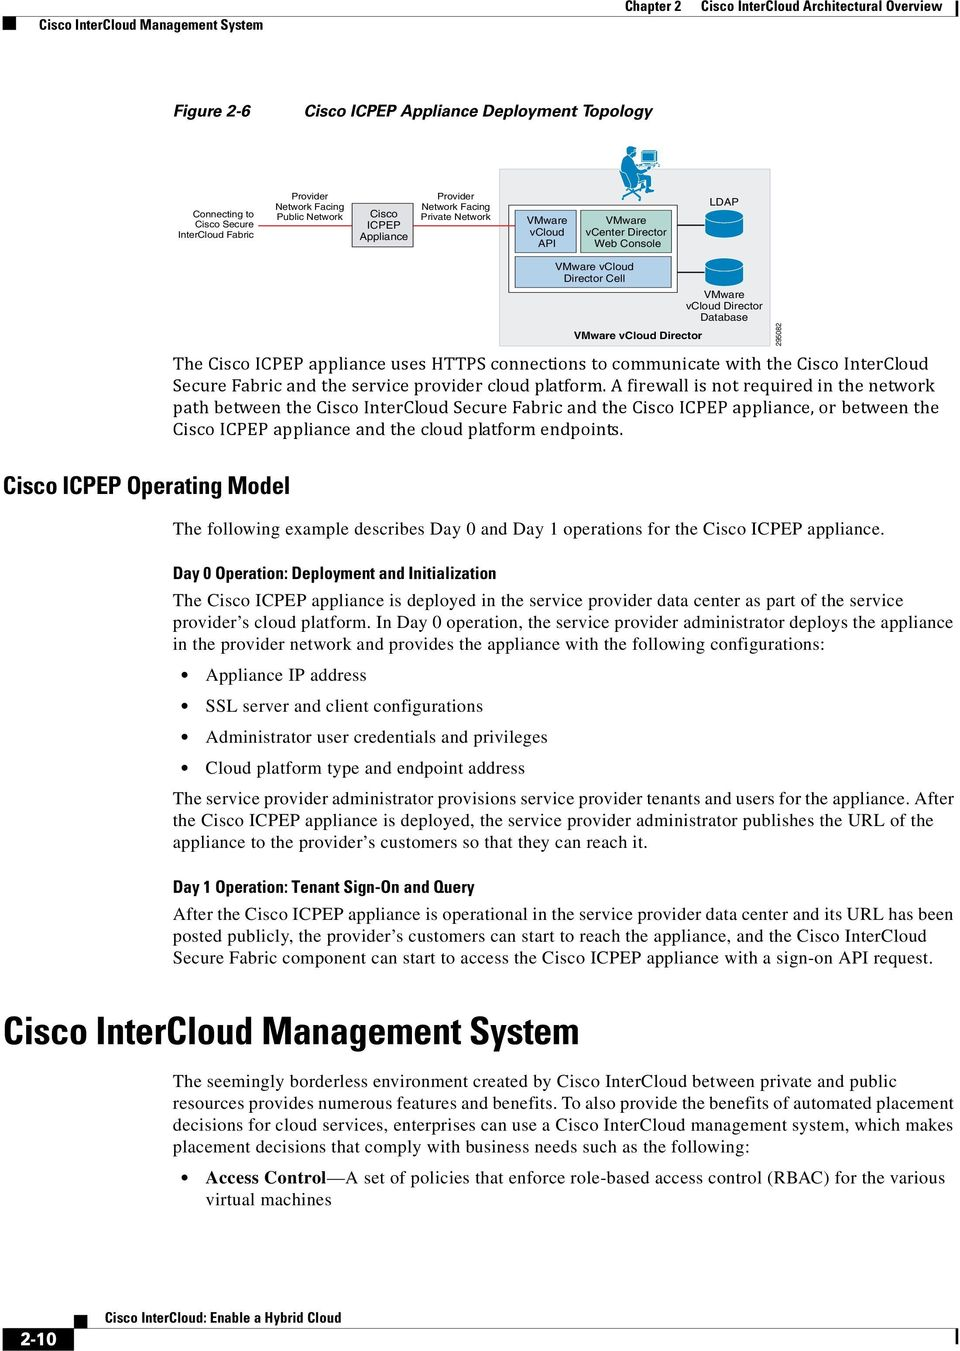 Cisco ICPEP appliance uses HTTPS connections to communicate with the Cisco InterCloud Secure Fabric and the service provider cloud platform.